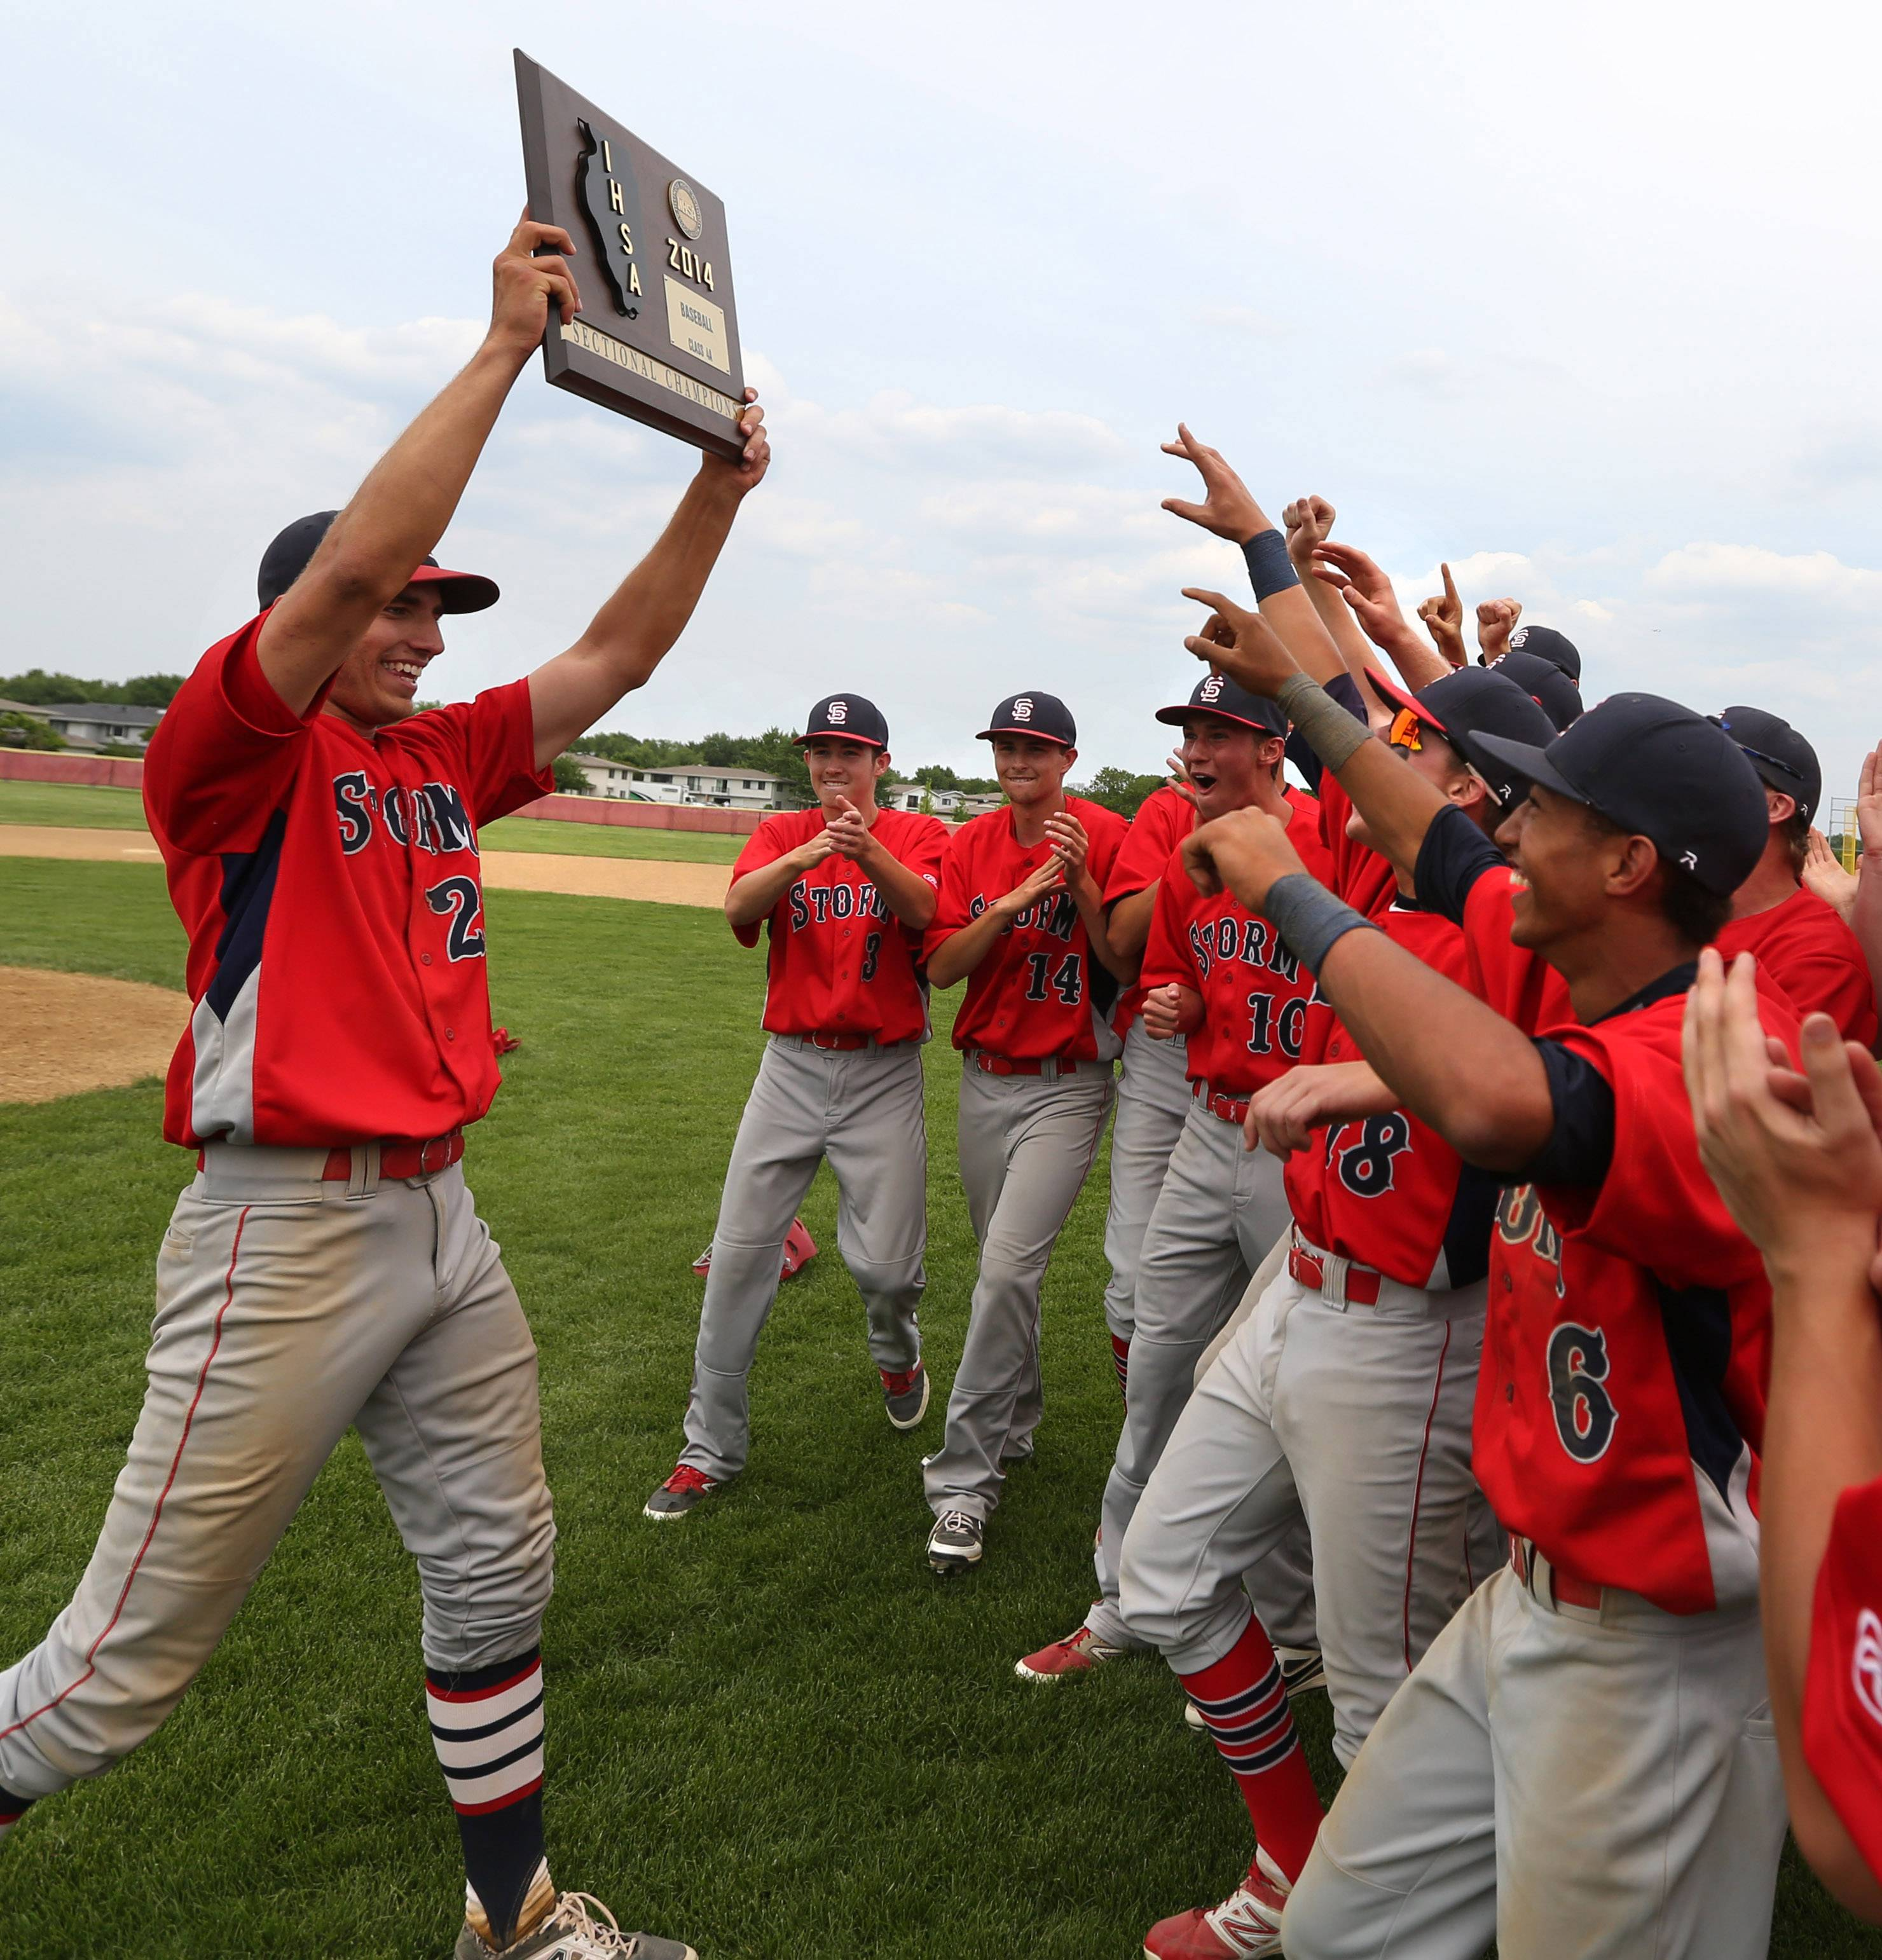 South Elgin's Ryan Nutof holds the sectional plaque after South Elgin's 8-3 victory over Batavia in the Schaumburg sectional championship game Saturday.